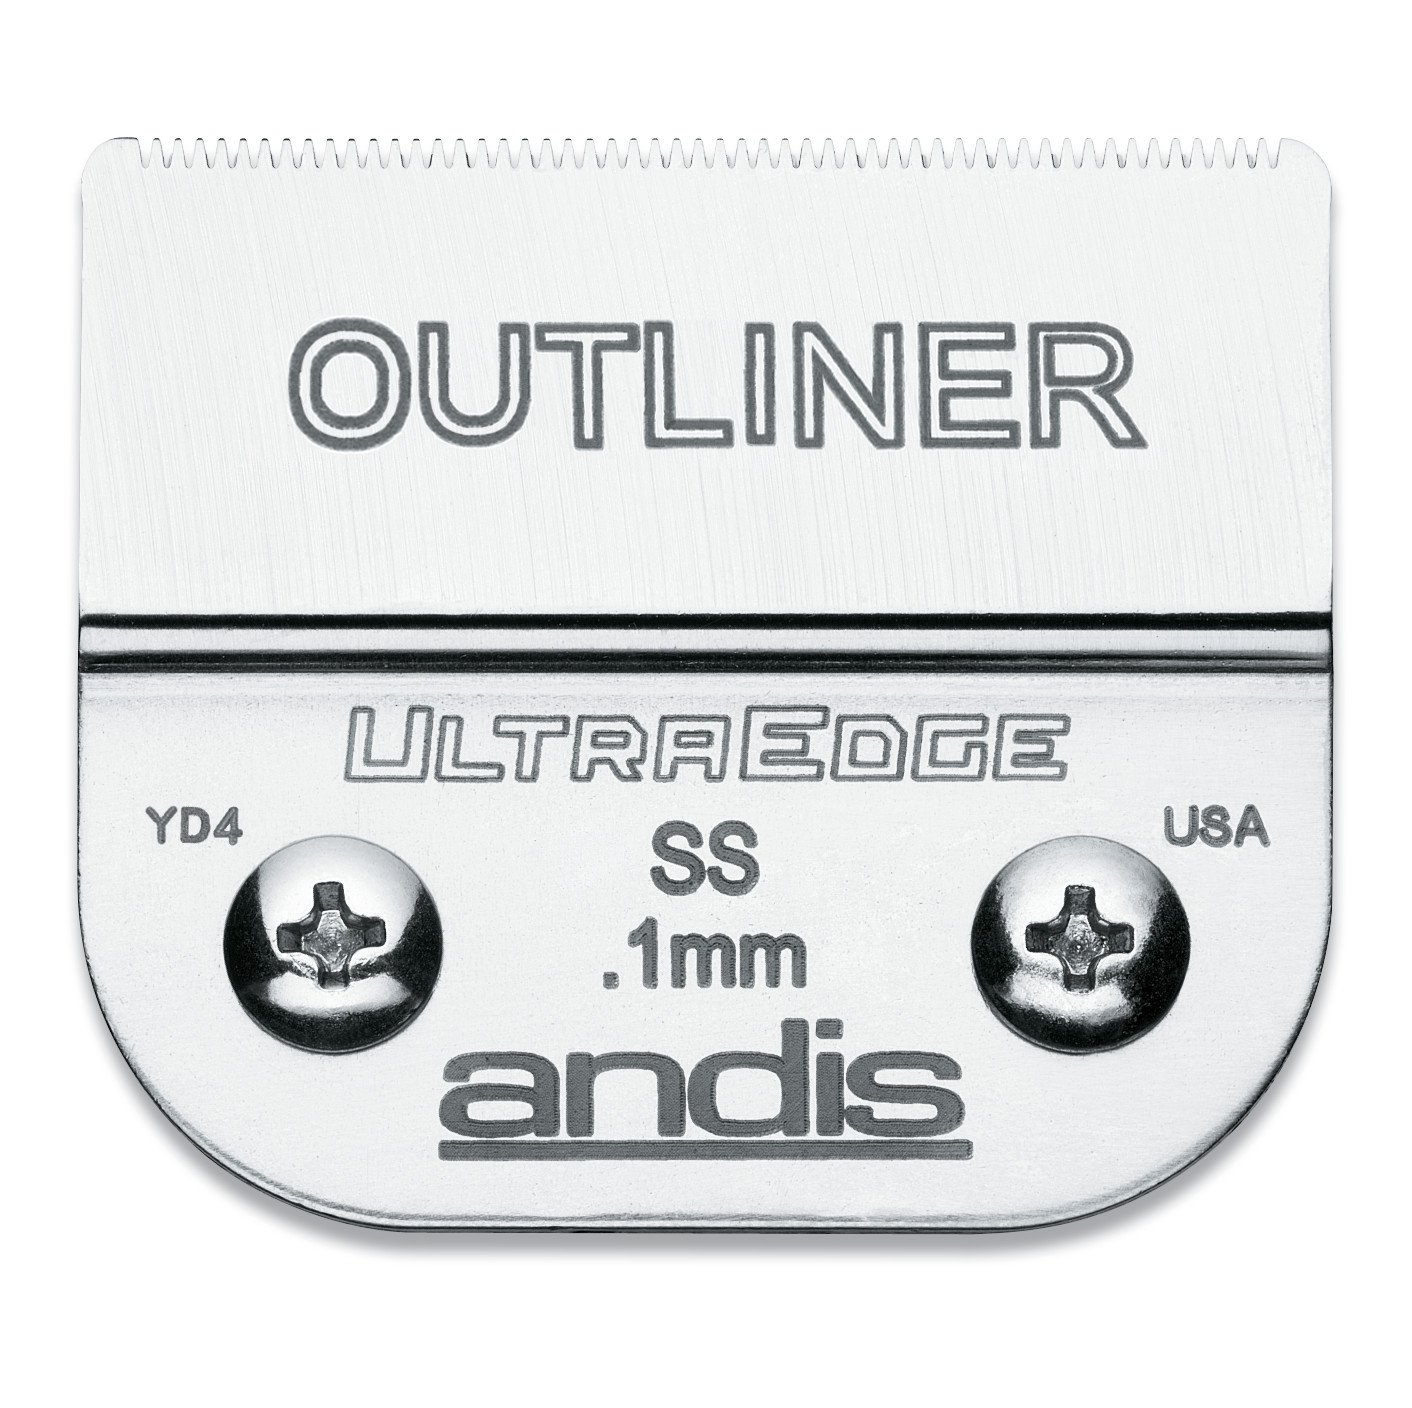 Cuchillas : Andis Outliner Ultra Edge 64160 Reemplazo